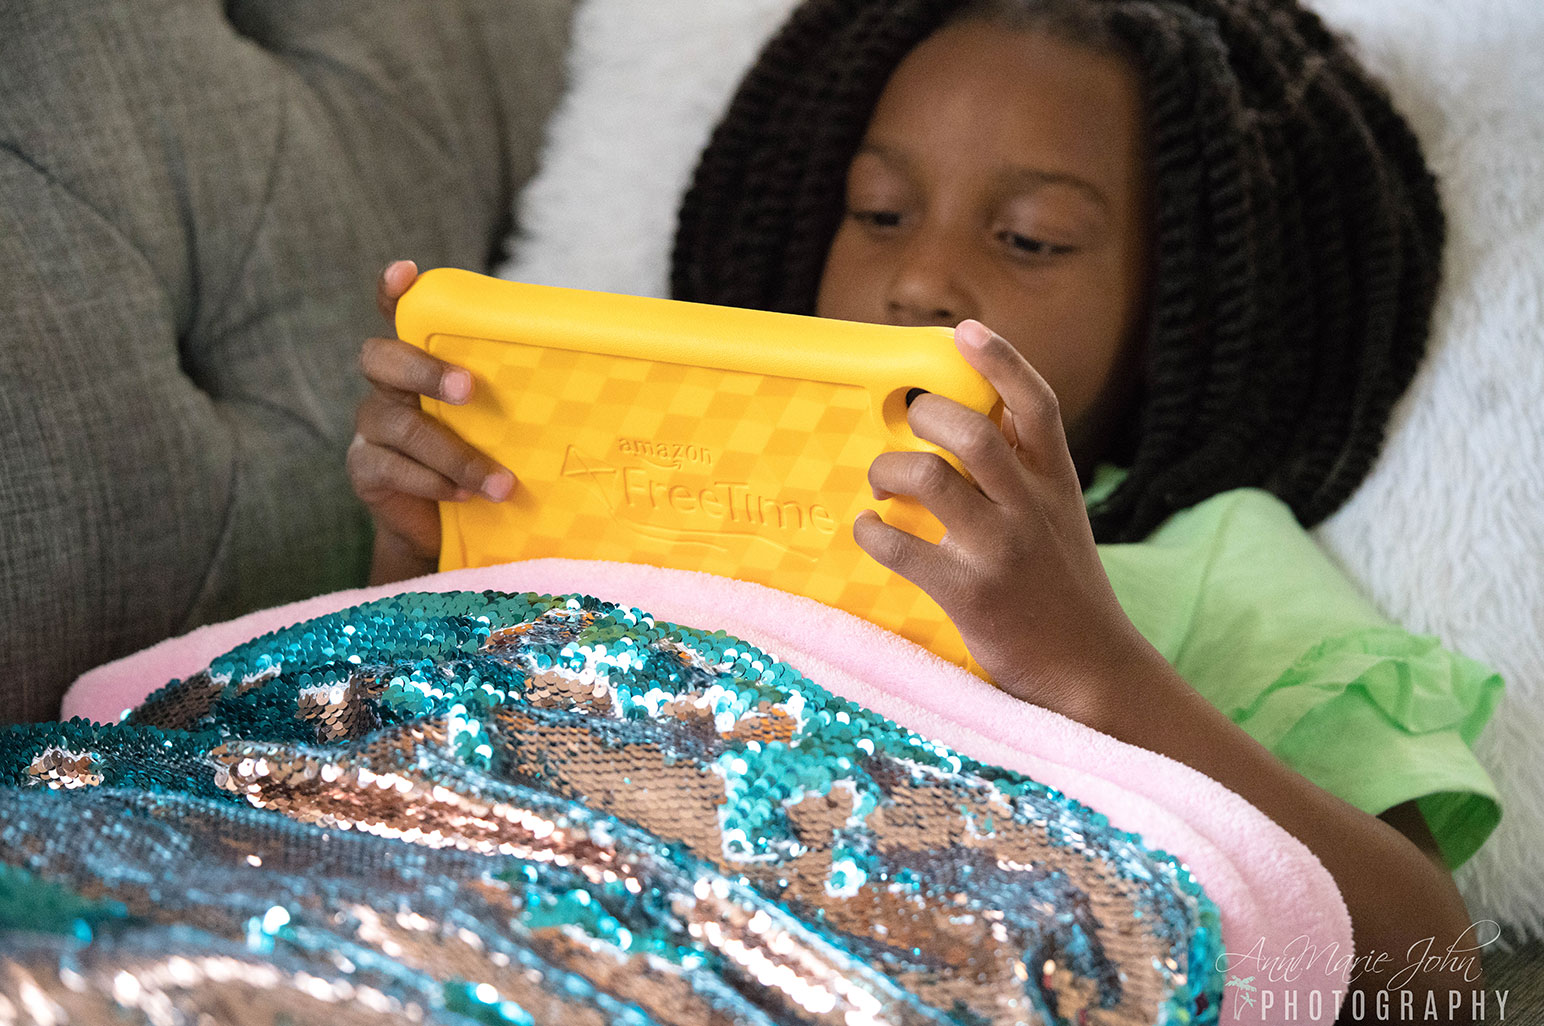 5 Reasons To Get the Kindle Fire Kids Edition Tablet